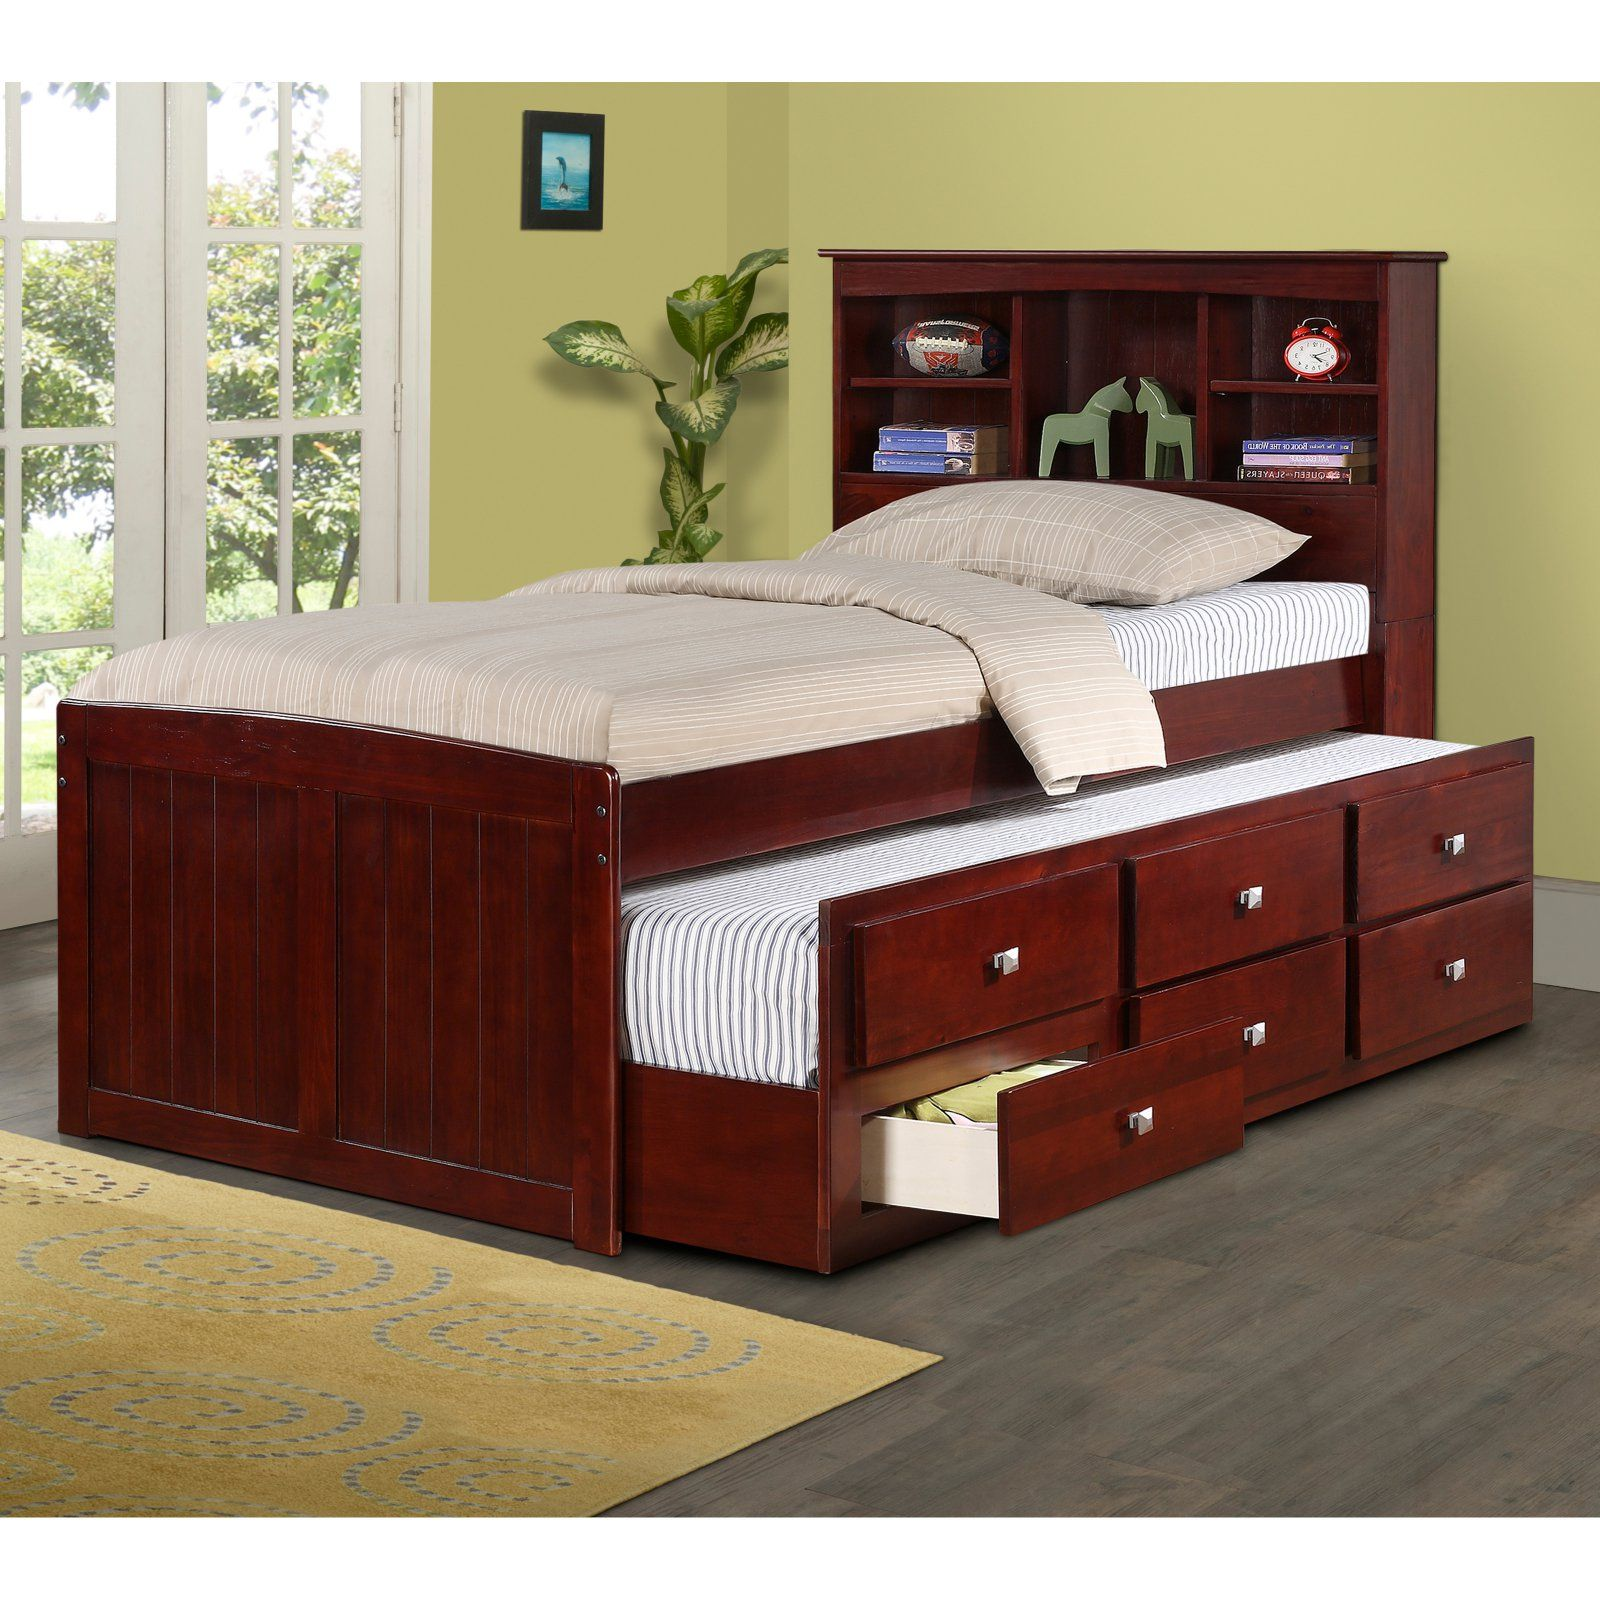 Donco Bookcase Captains Bed Size Twin Captains Bed Bed With